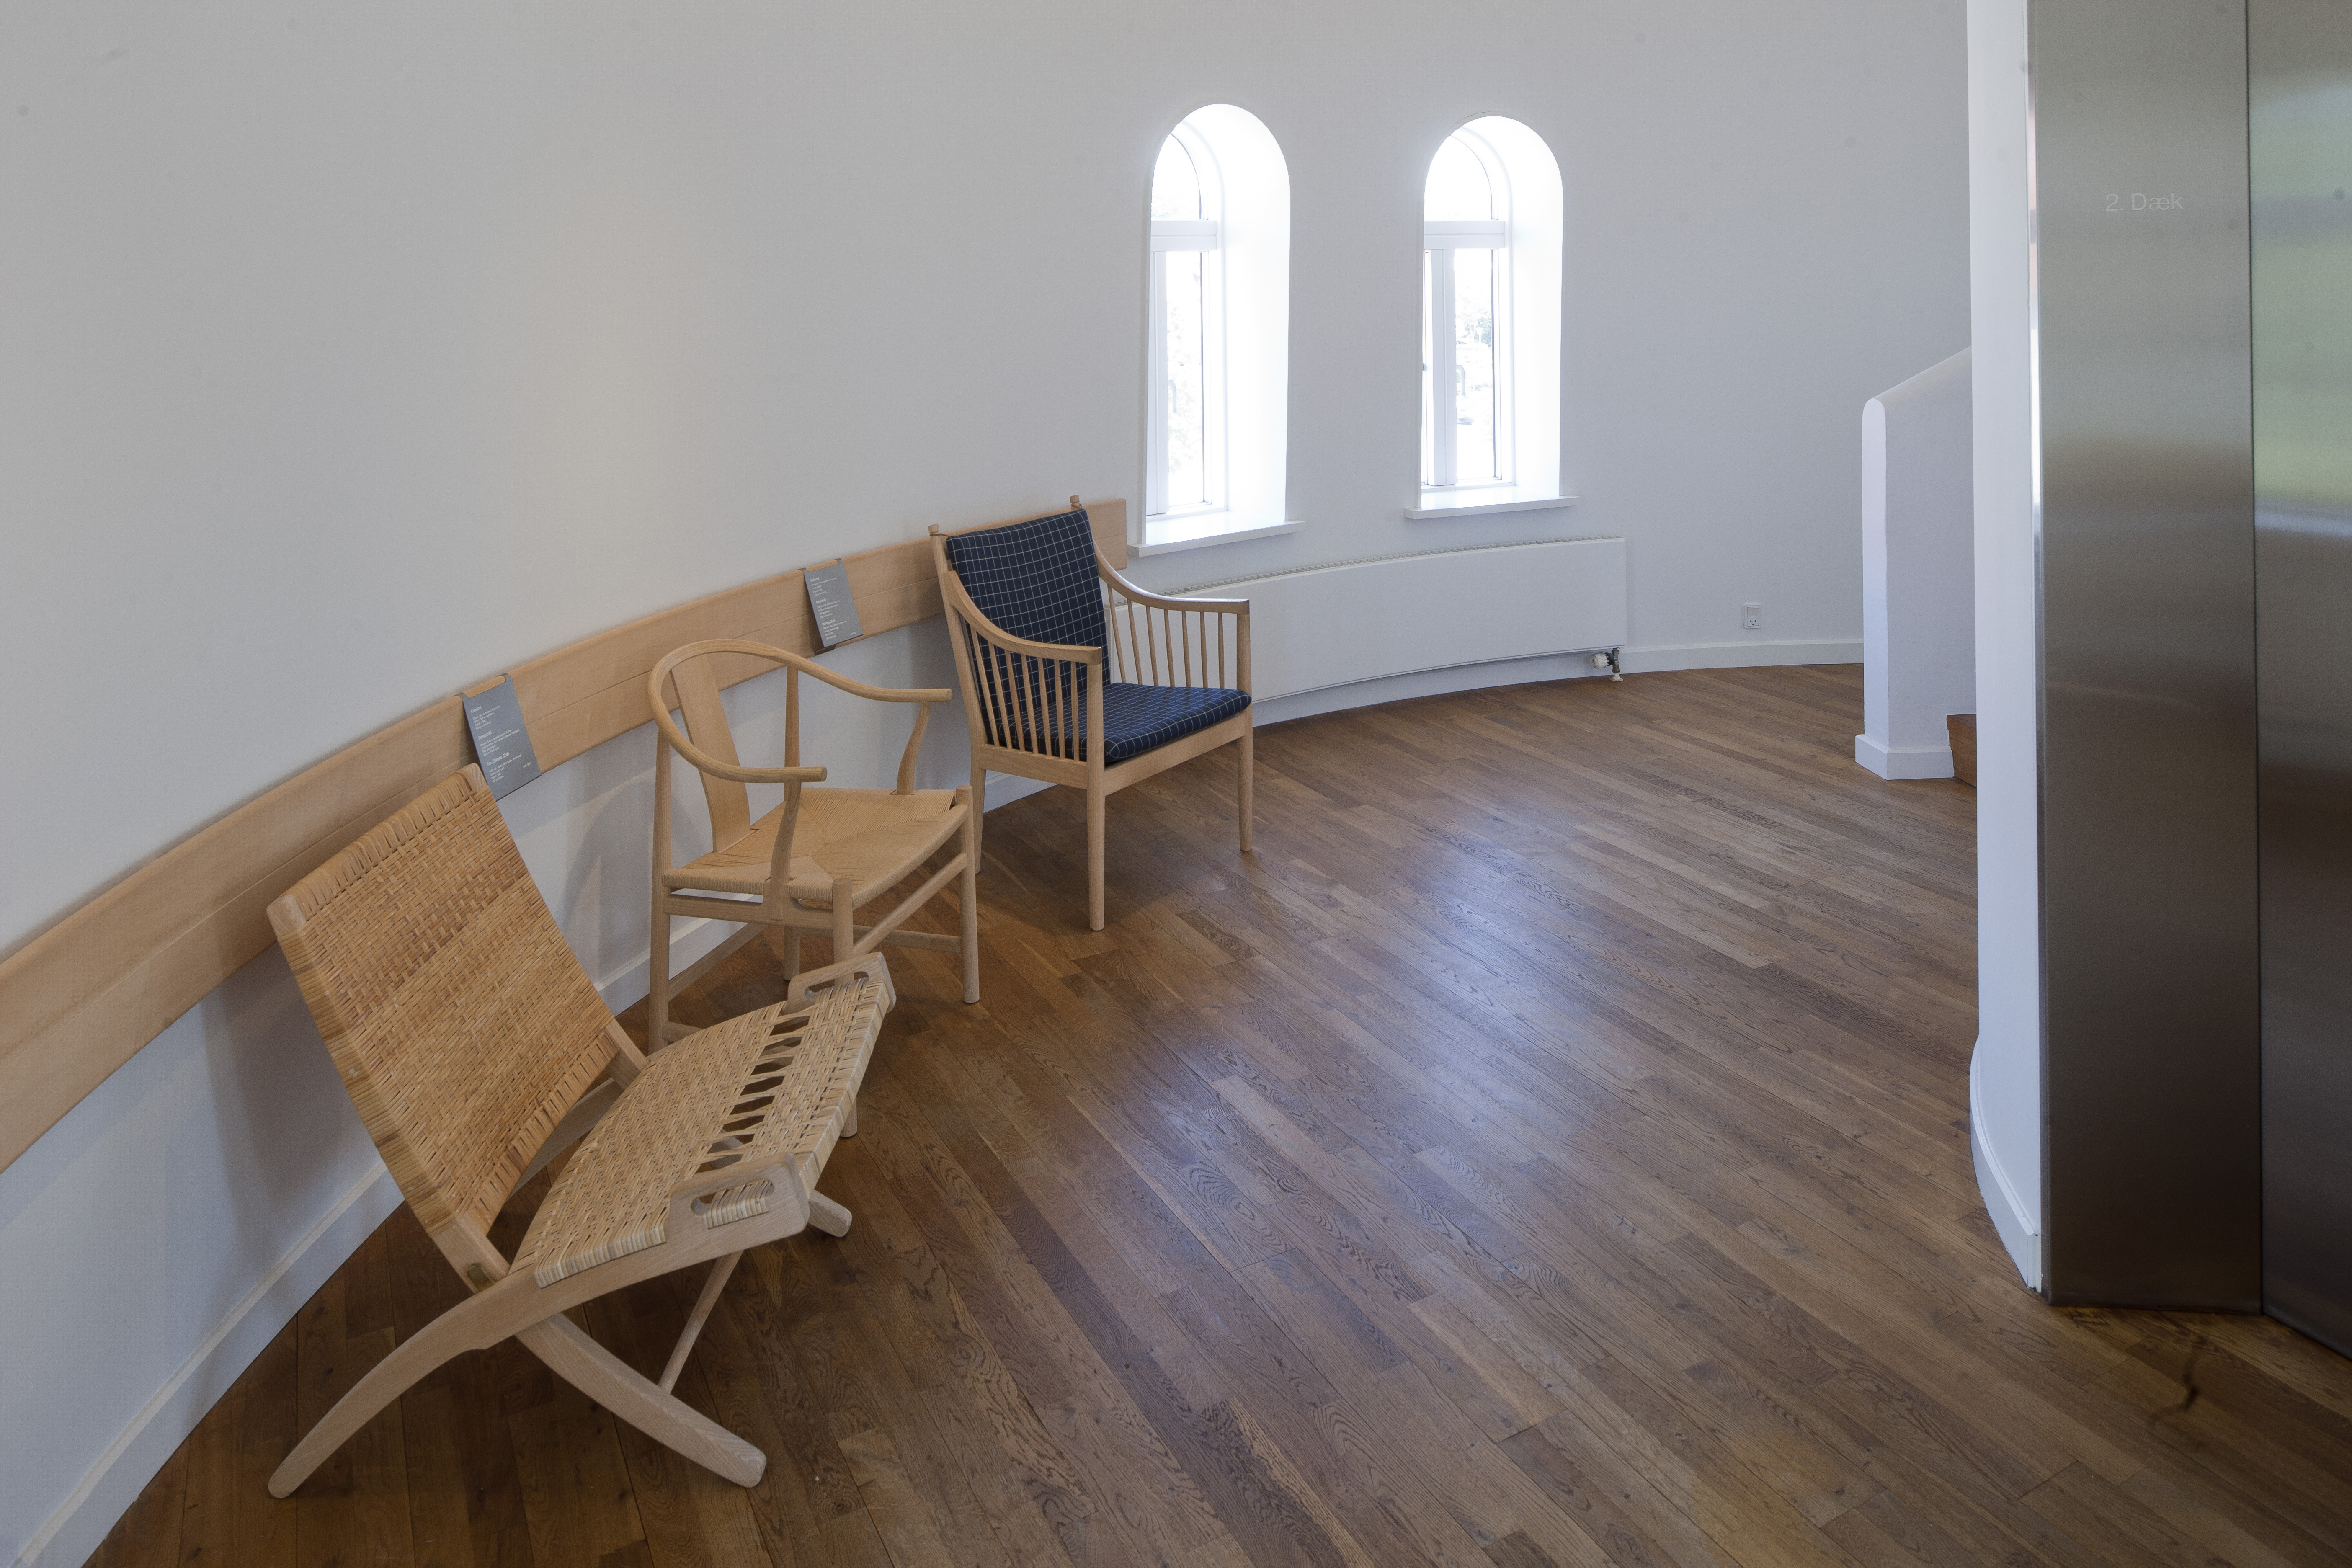 Paying homage to Hans Wegner's career